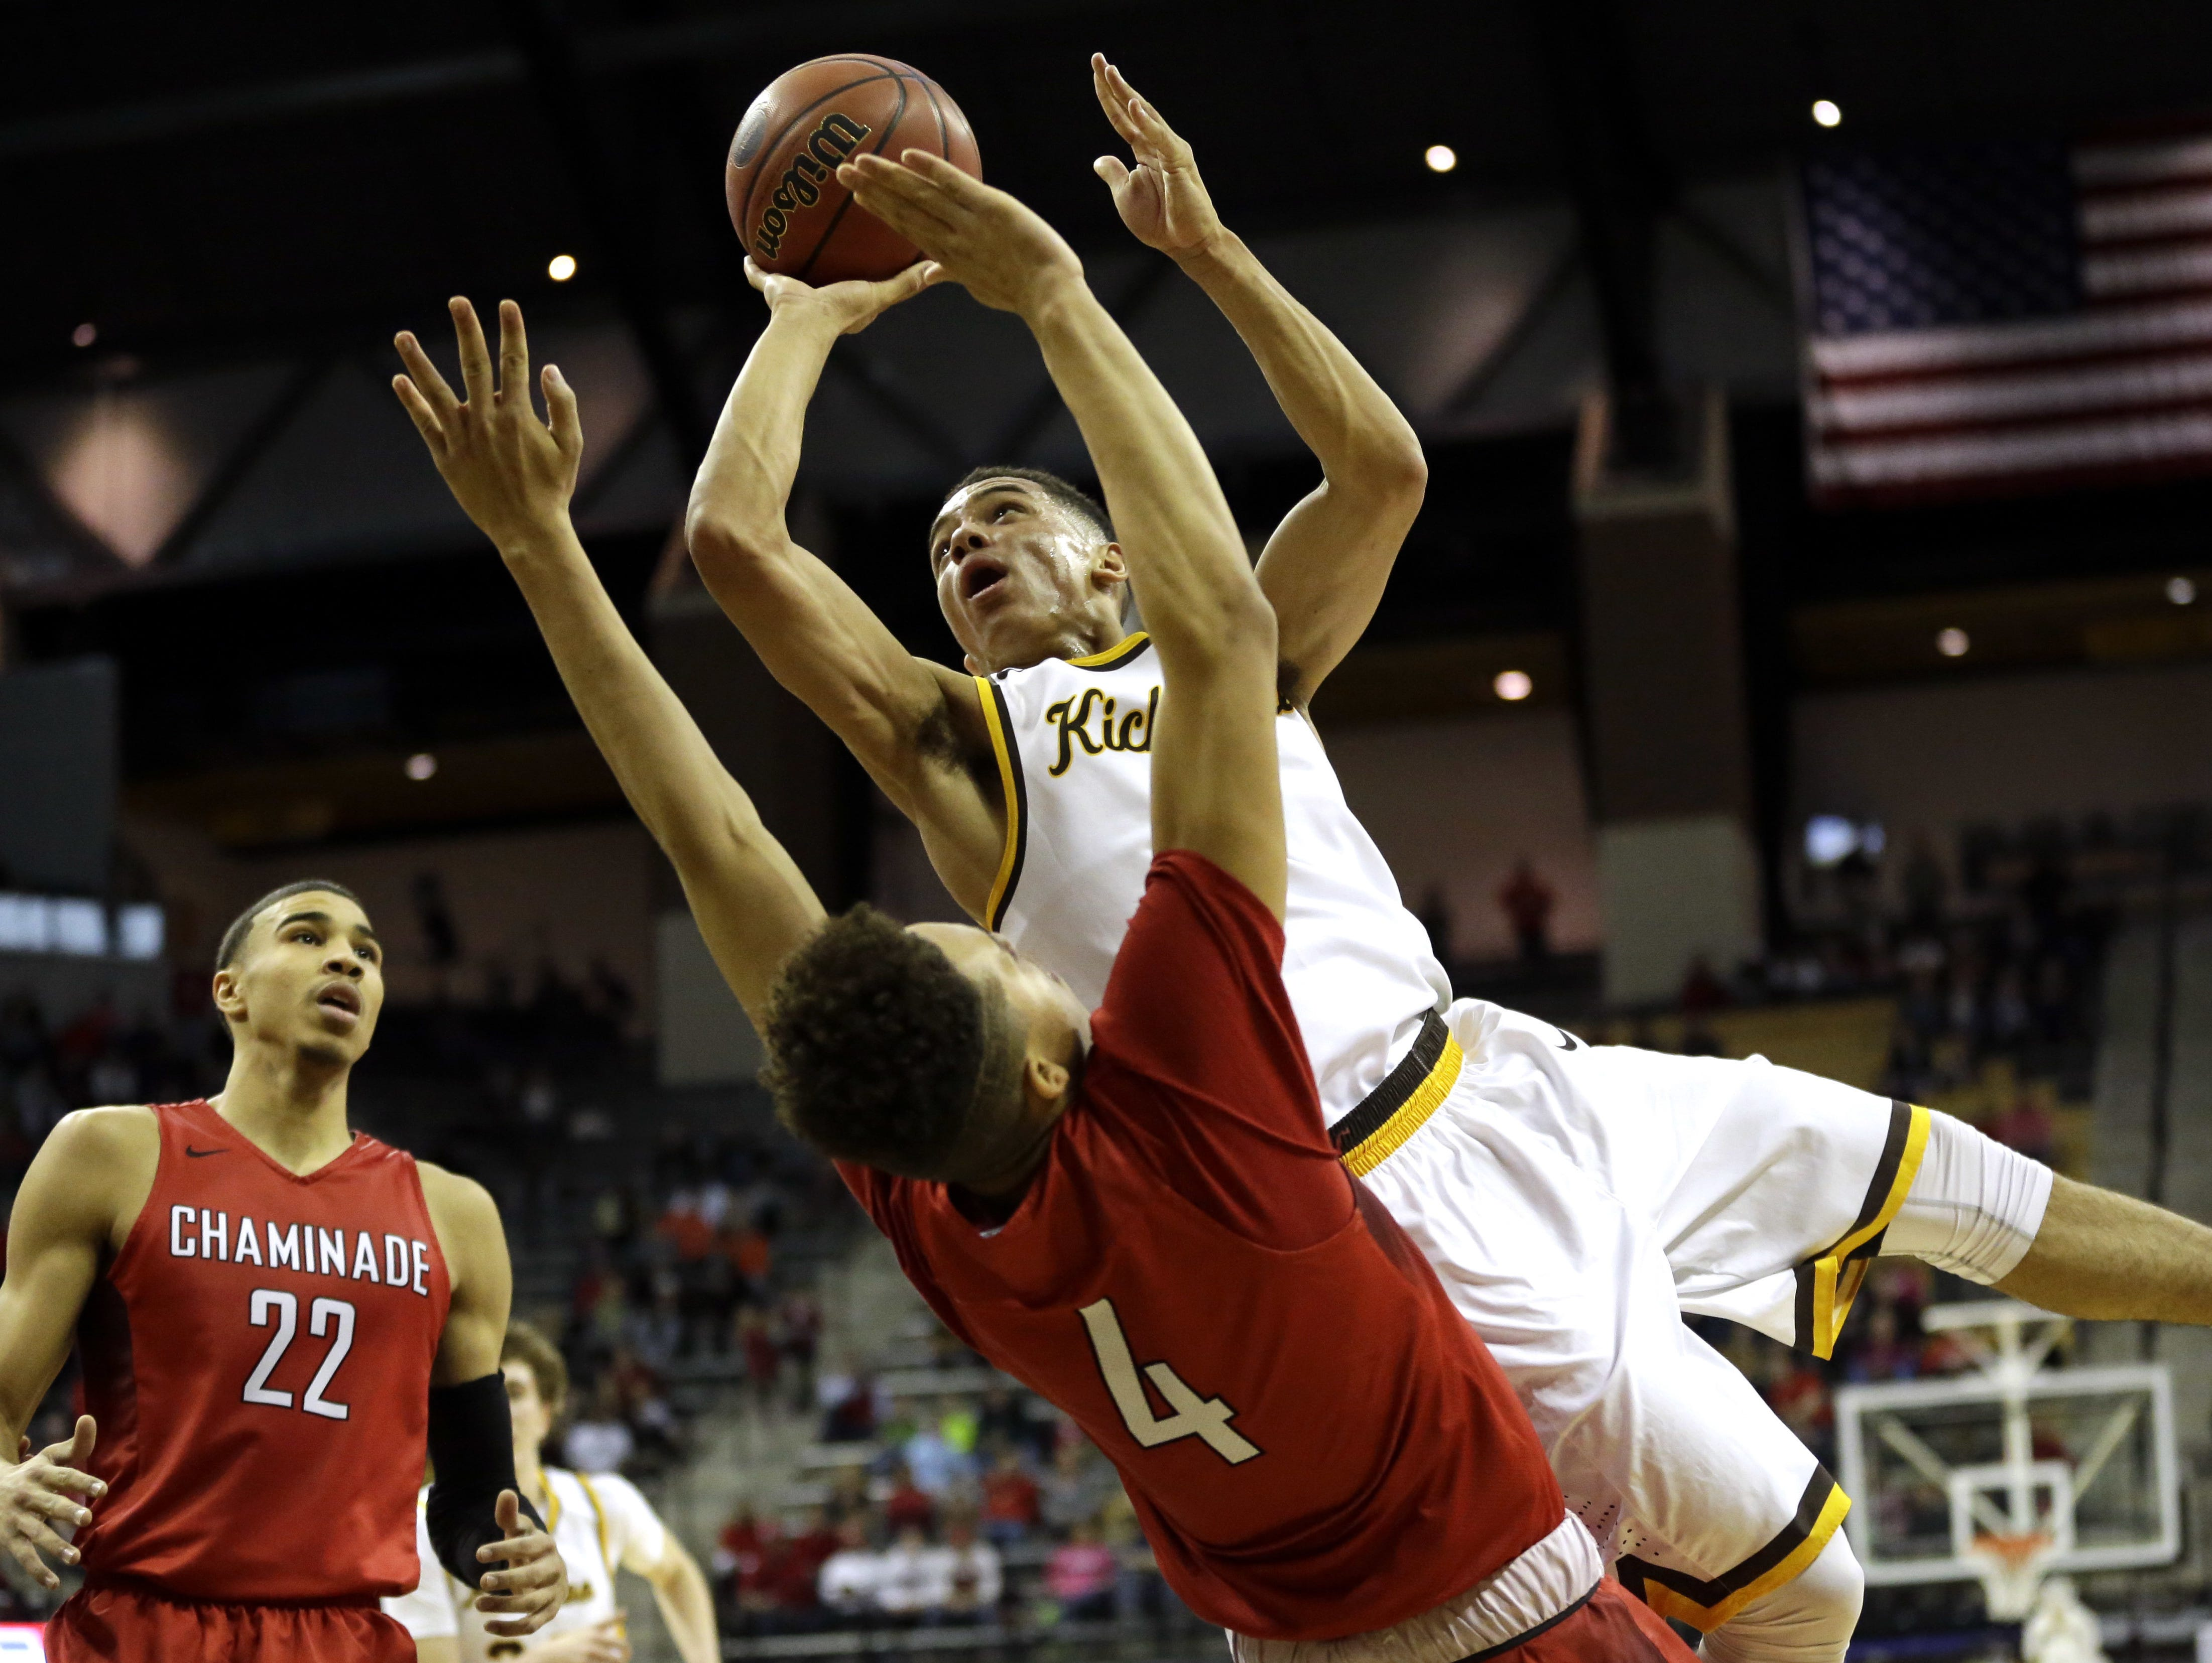 Kickapoo junior Cameron Davis, top center, is fouled on his way to the basket by Chaminade's Jericole Hellems (4) as Chaminade's Jayson Tatum (22) watches during the second half of the Missouri Class 5 boys' high school championship game in Columbia.